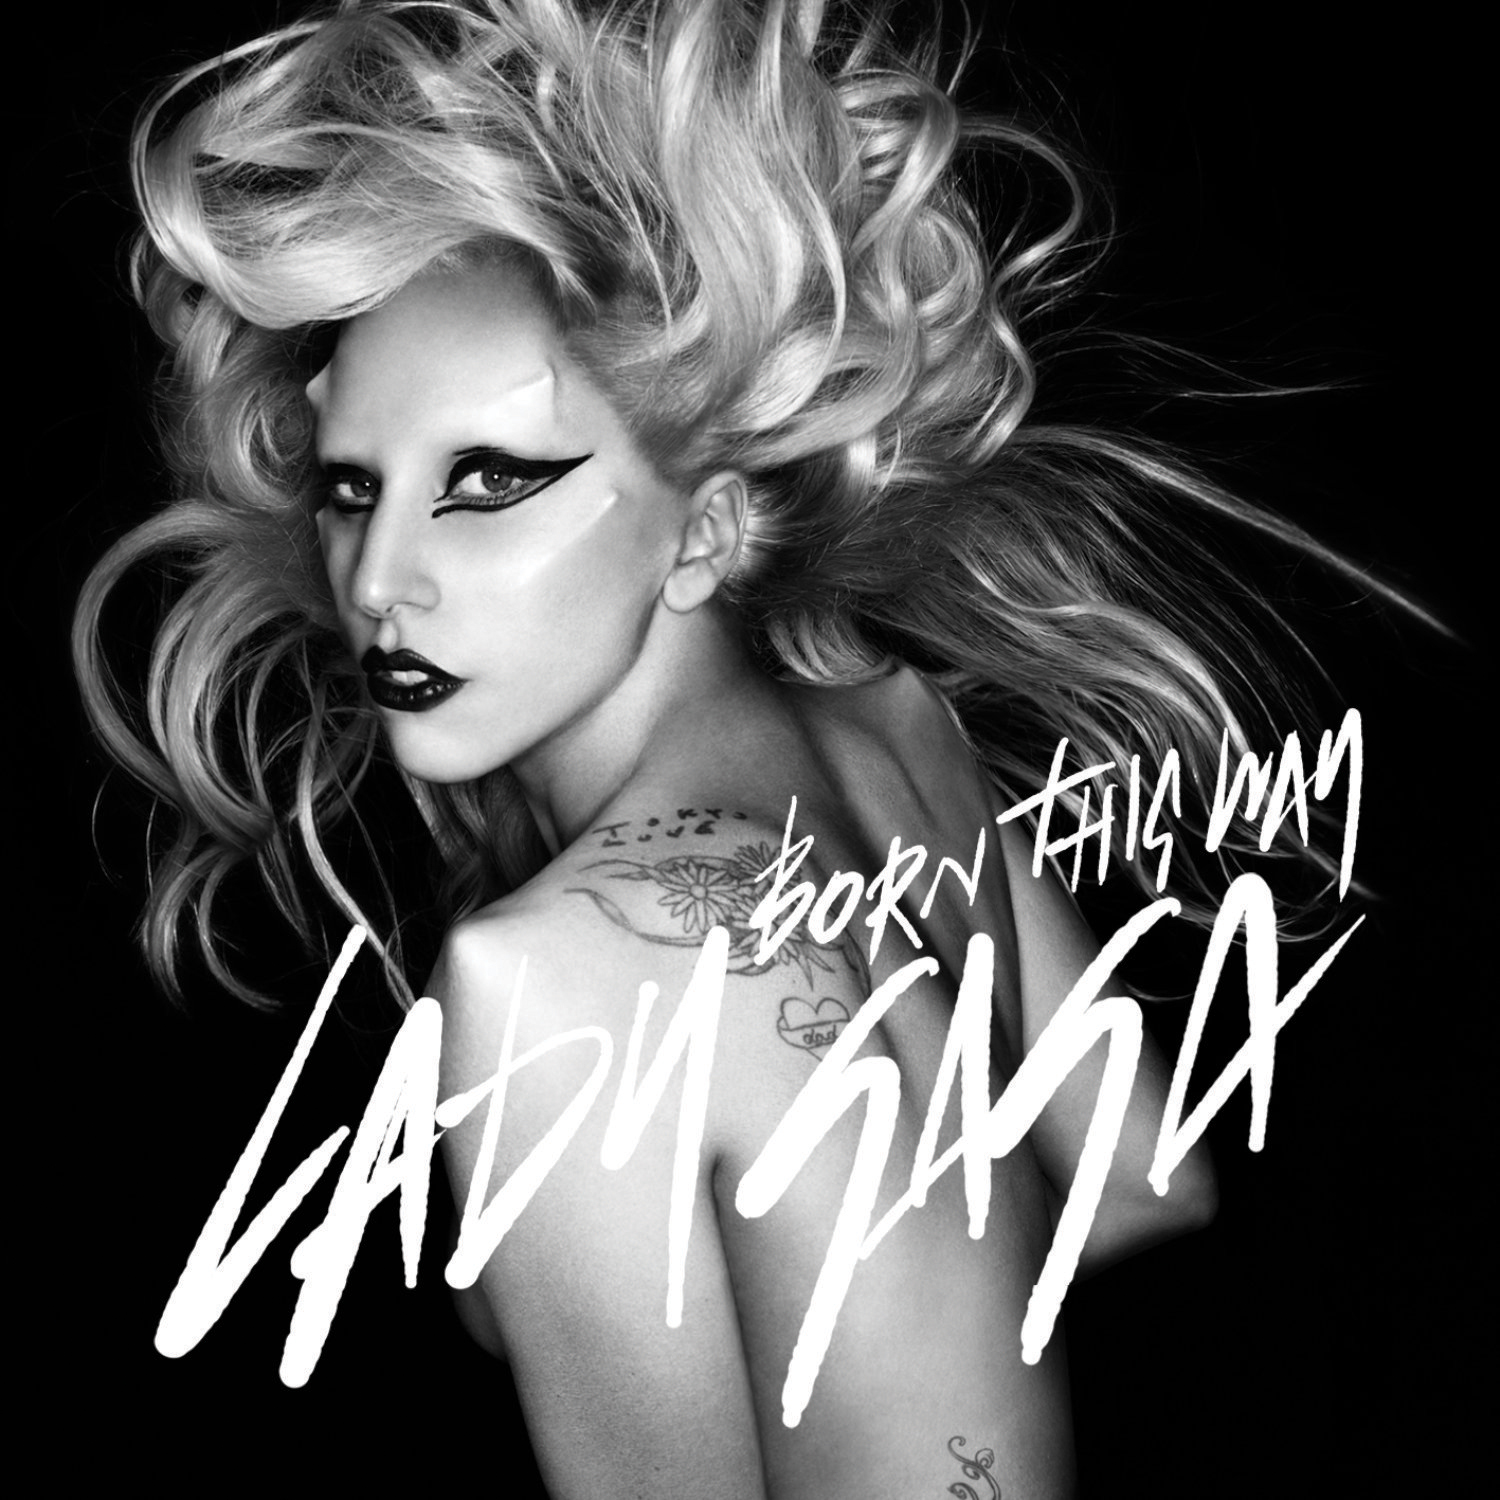 http://1.bp.blogspot.com/-zEpywM4yGLQ/TqtcppUW70I/AAAAAAAAABU/1tL4FZYVJk0/s1600/Lady-GaGa-%25E2%2580%2593-Born-This-Way-Official-Single-Cover.jpg